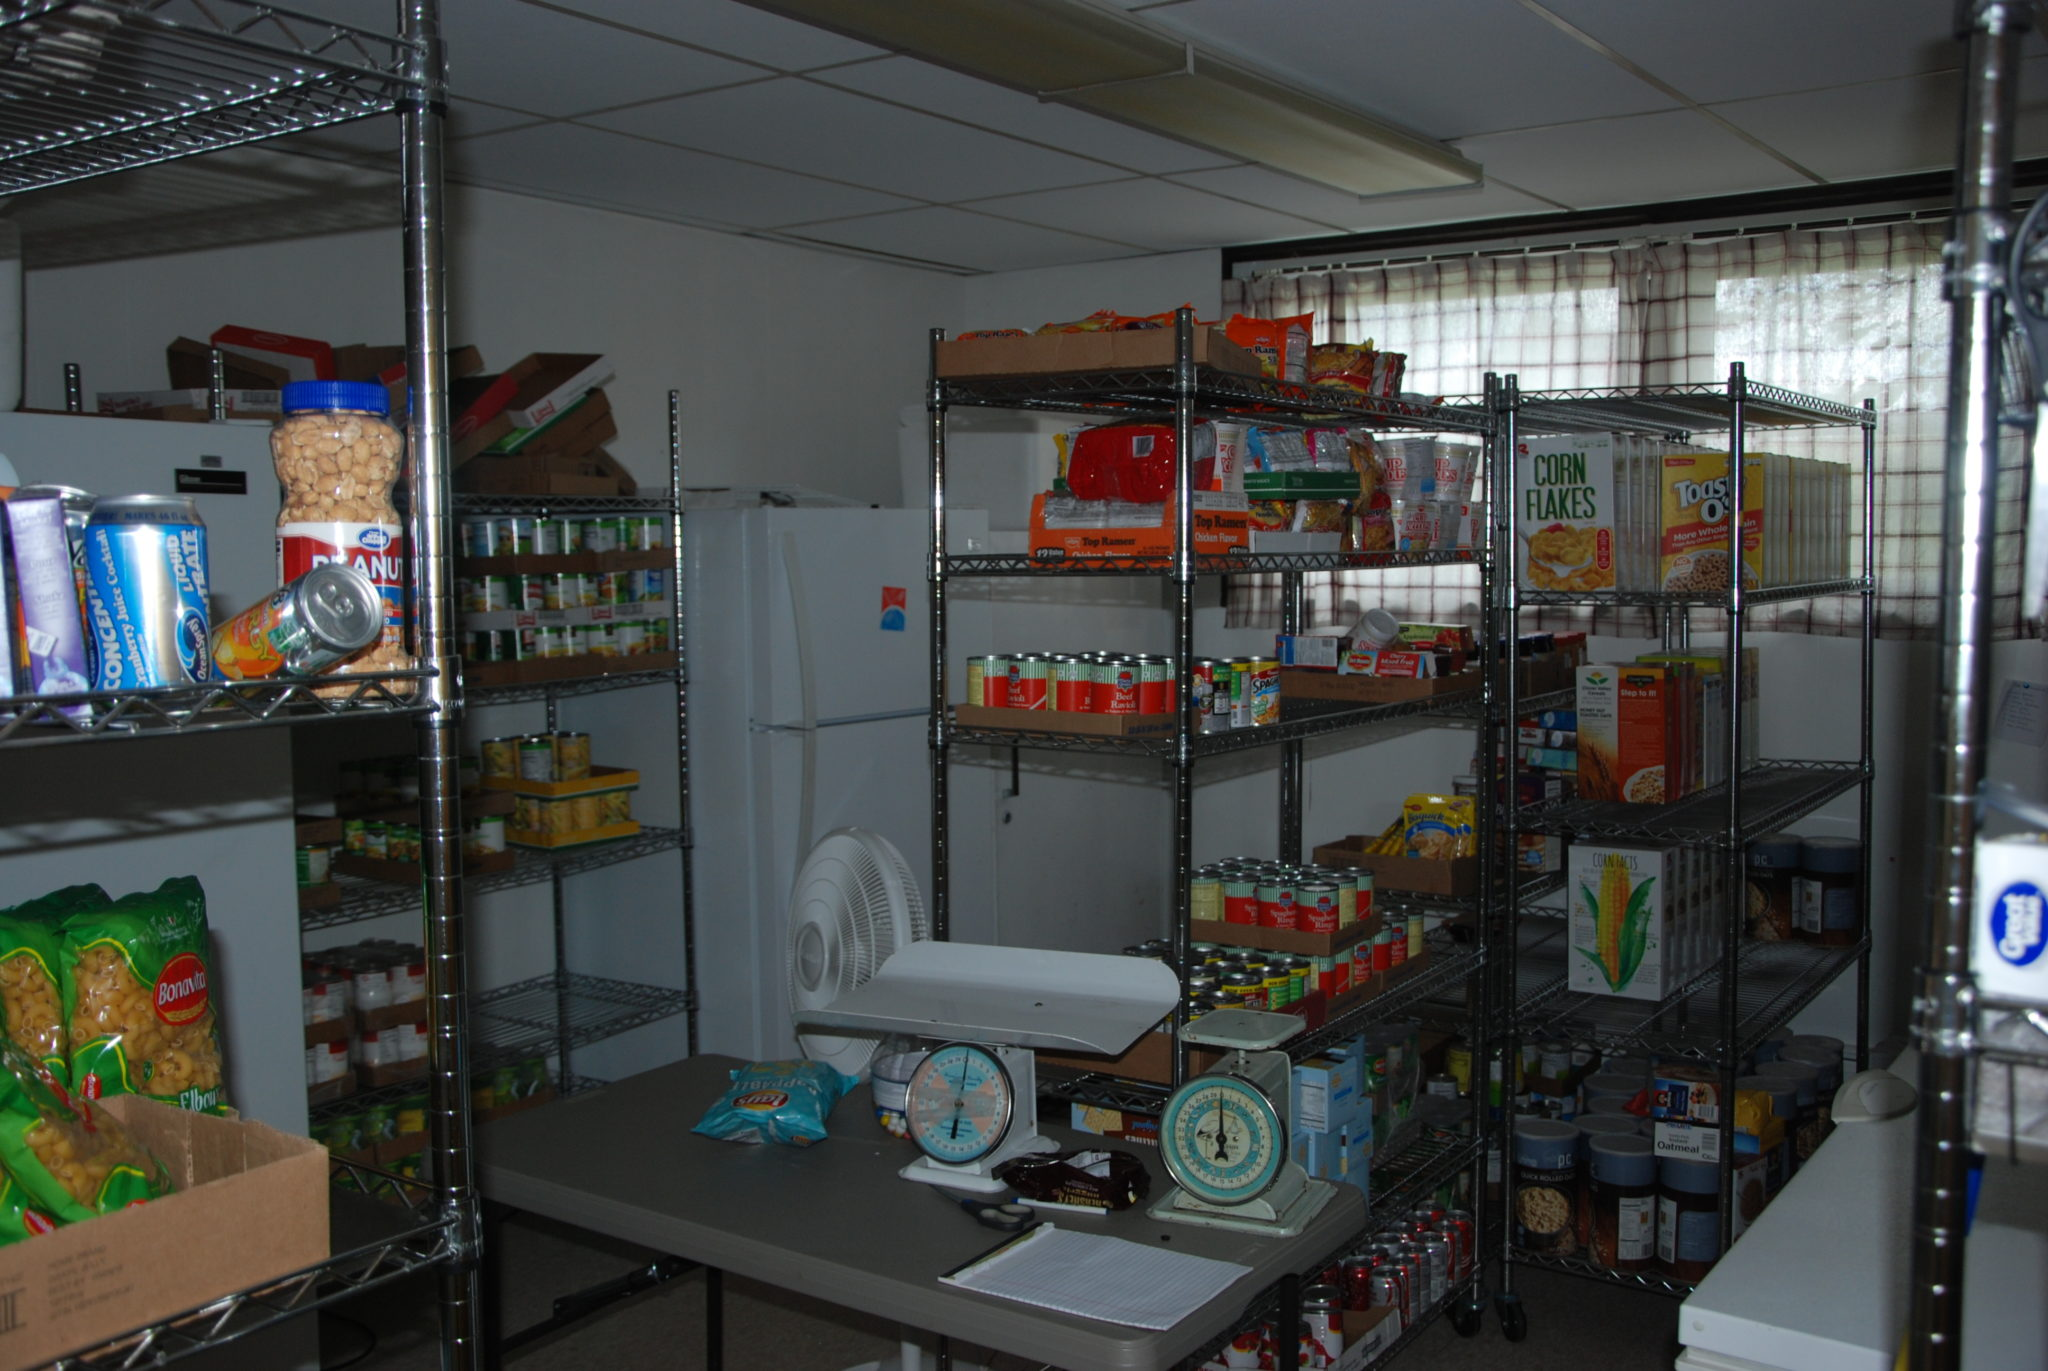 Food pantry faces eviction